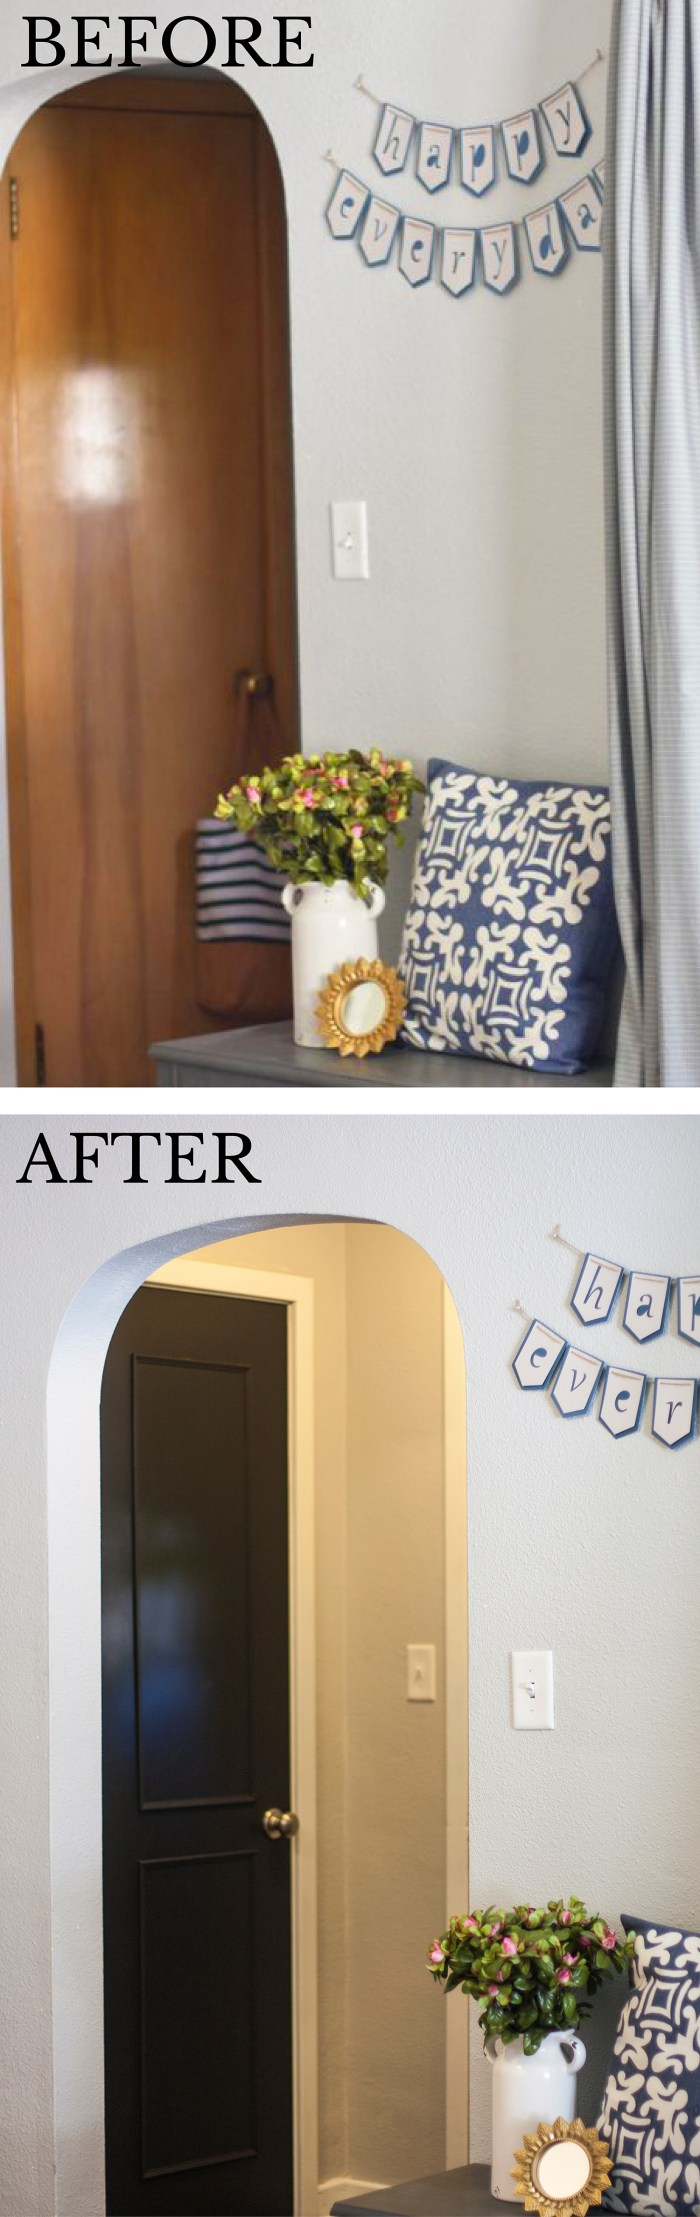 Considering painting your interior doors black? Check out this DIY door makeover–the black doors and white trim look beautiful! And check out that hardware!